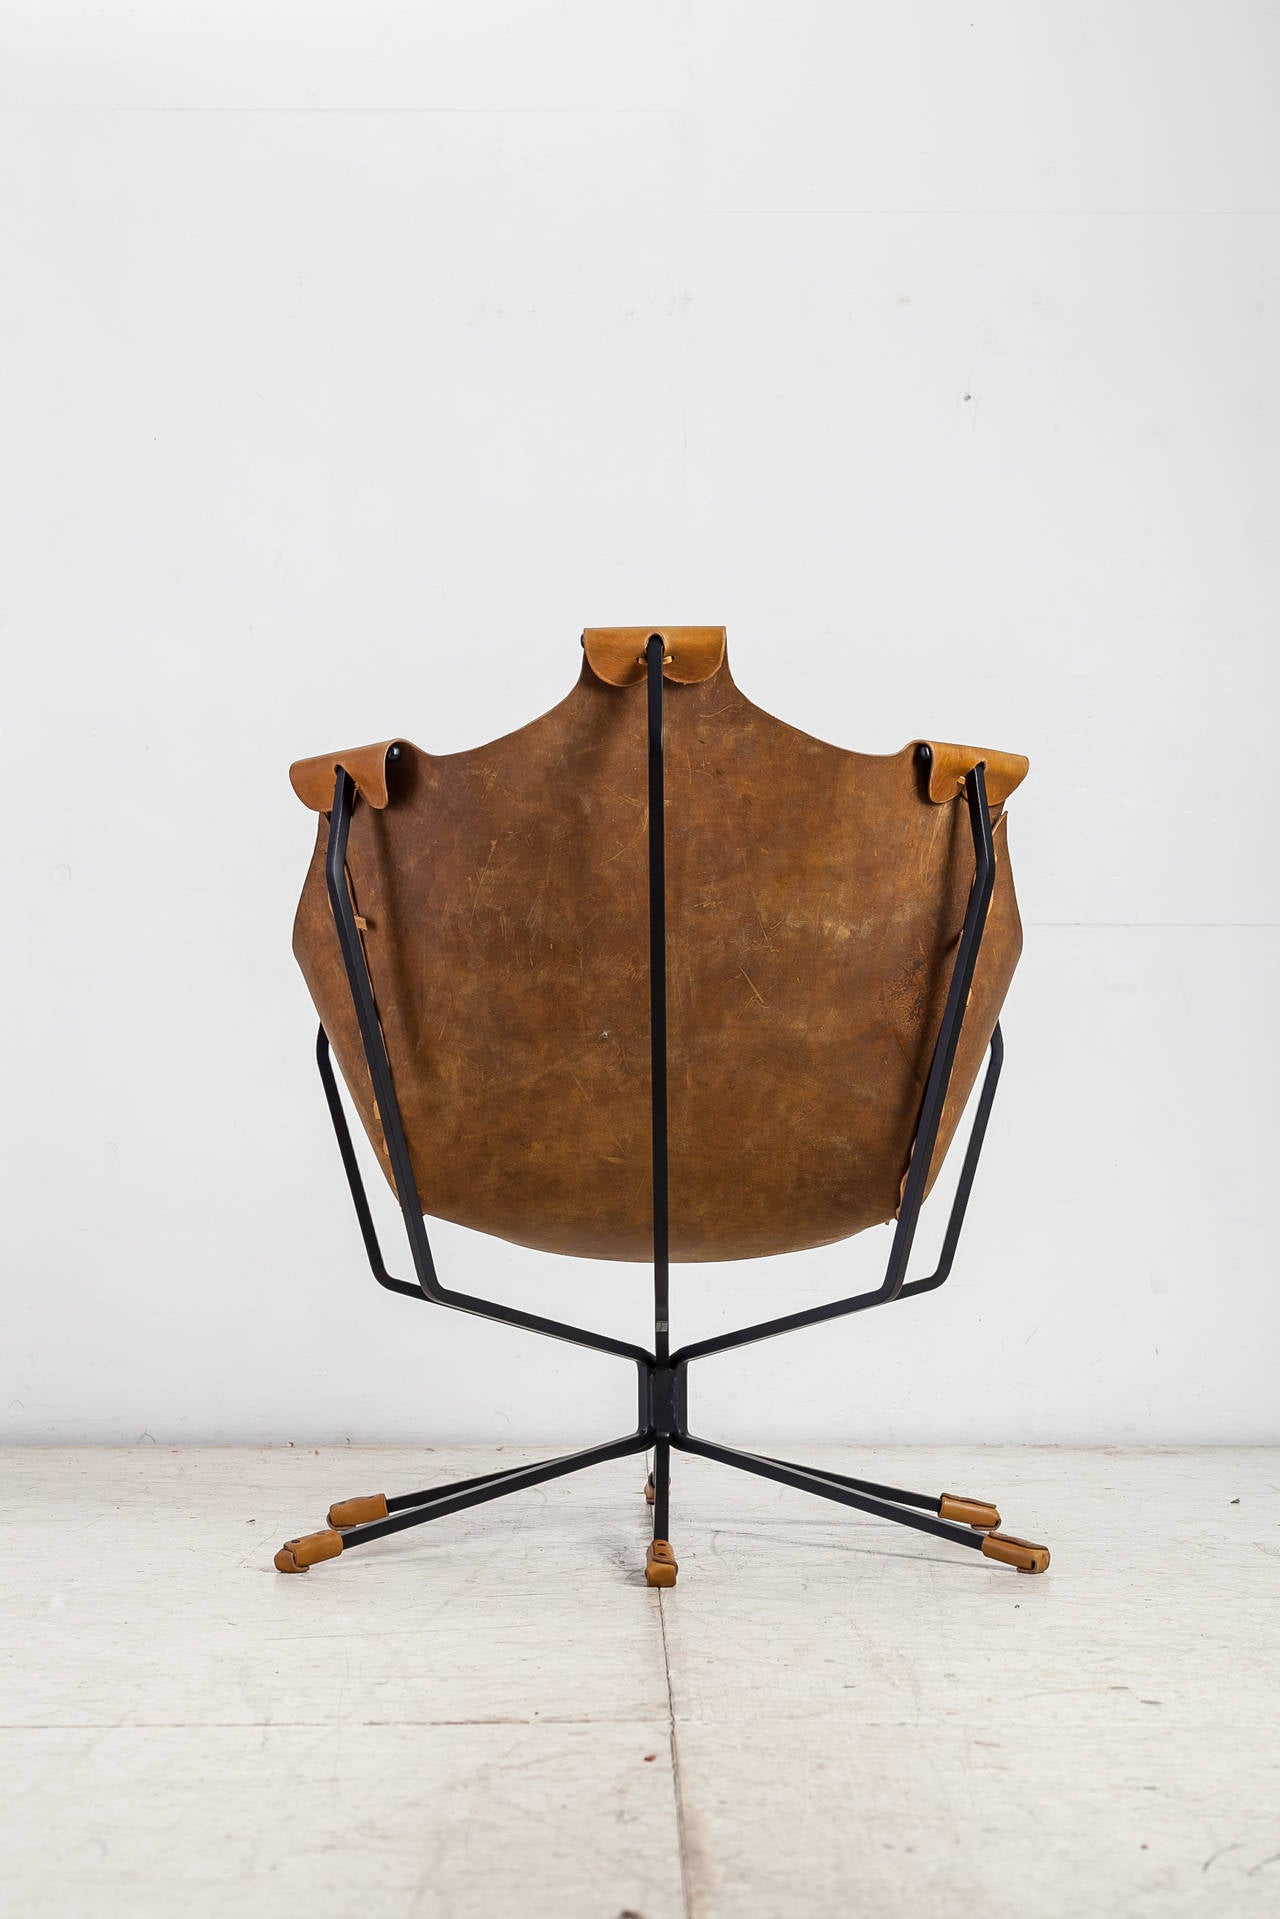 A model 'Flight of Fancy' sling chair by American designer Daniel Wenger. The chair is made of black steel frame with six legs, that come together in the middle and then spread out again. Hanging from the frame is brown leather seating. The seating